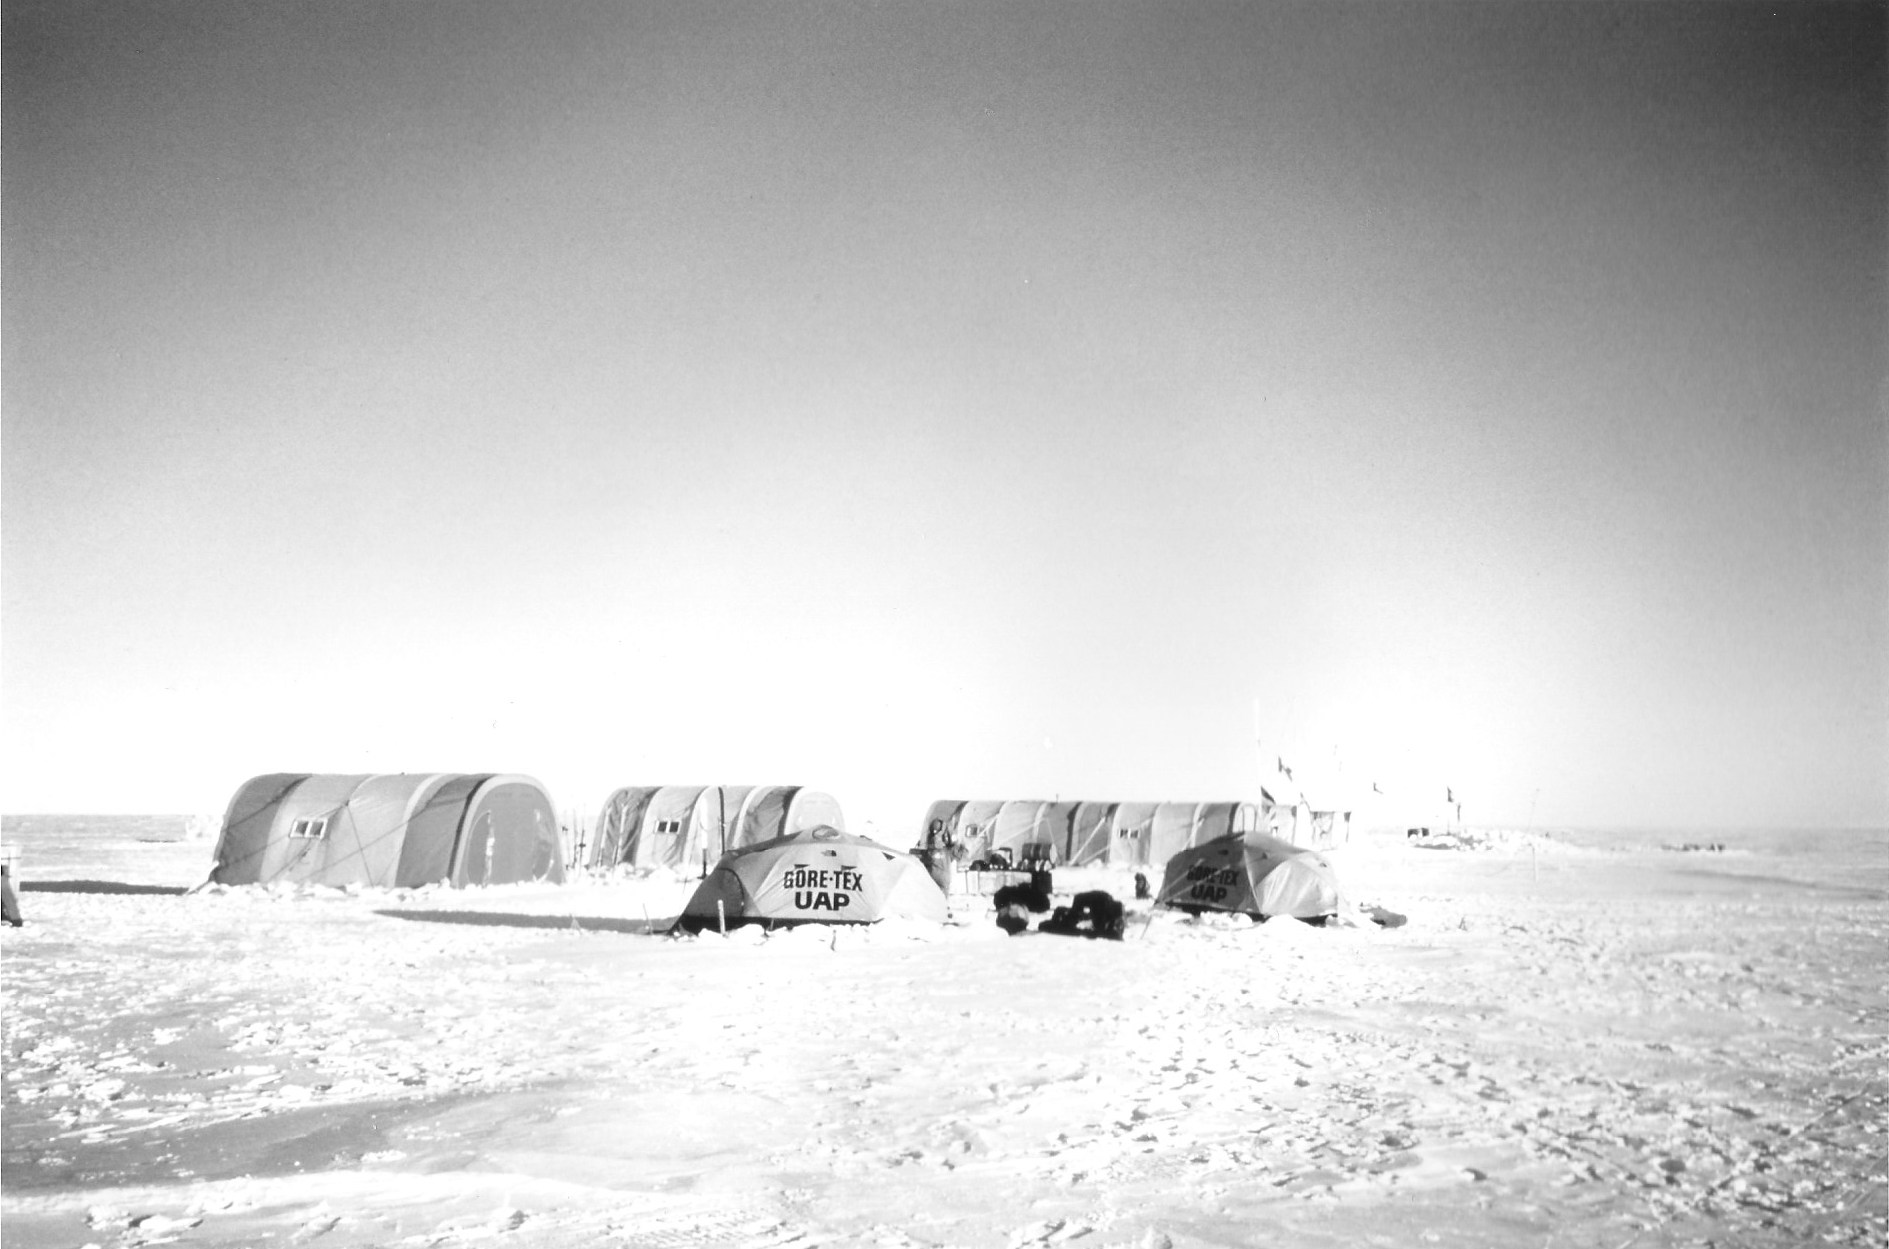 Patriot Hills base camp, where the journalists came to interview the expedition team and got stuck for two and a half weeks. November 1989. Photo: Jacqui Banaszynski